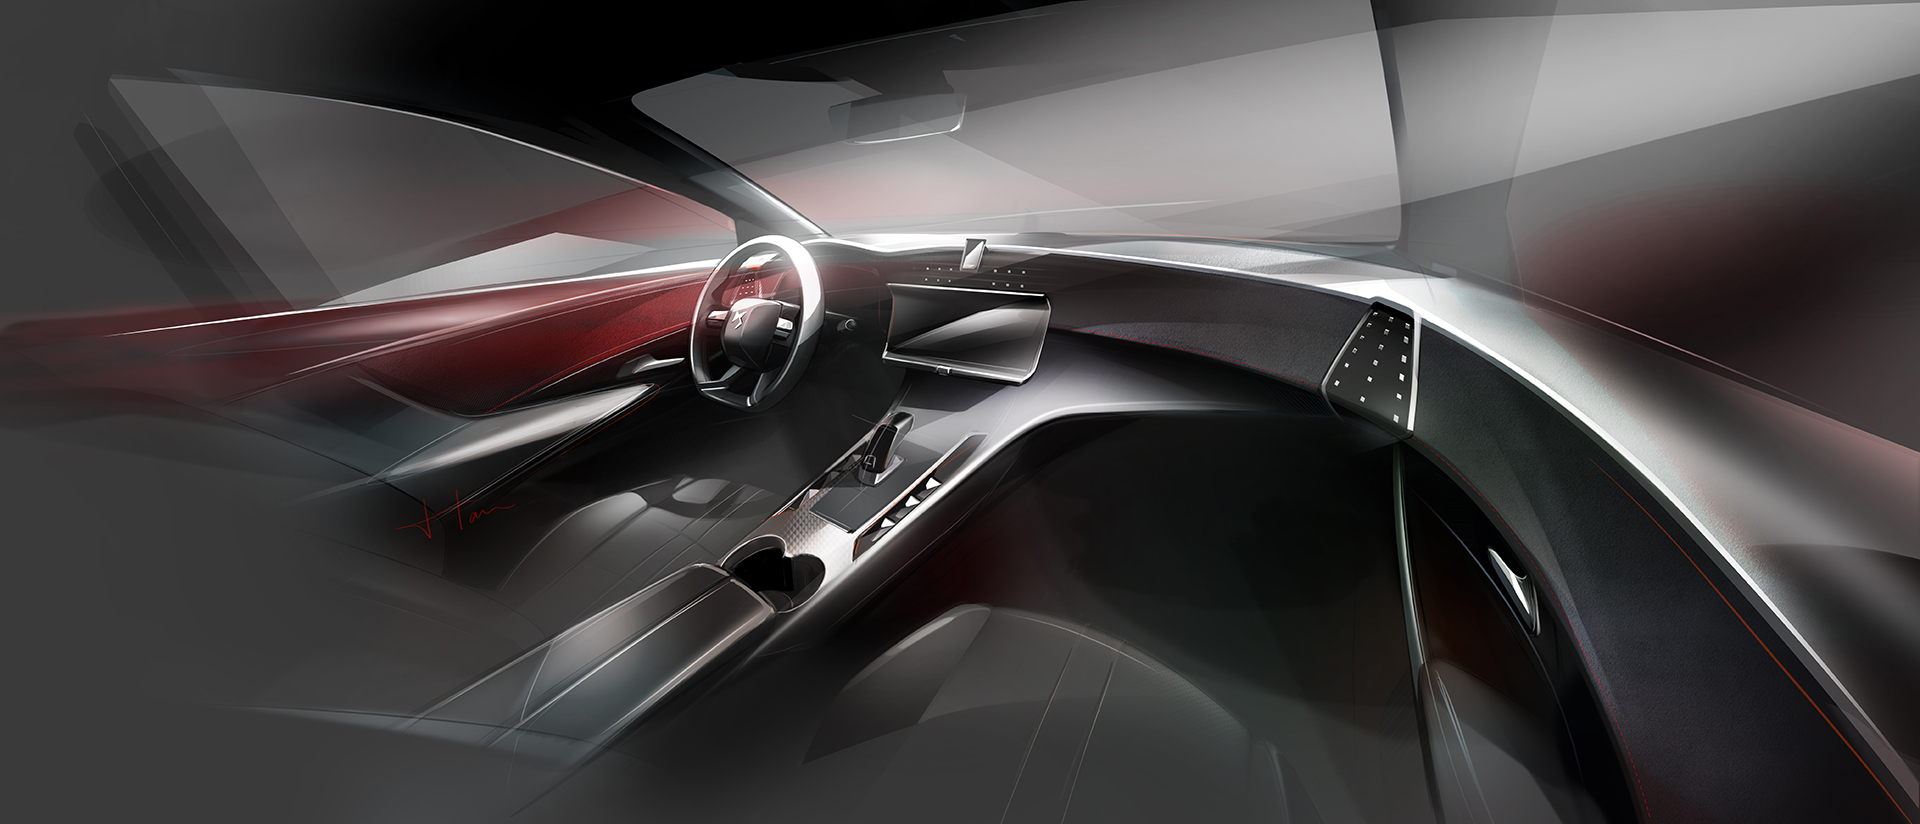 DS 7 CROSSBACK - 2017 - interior sketch design